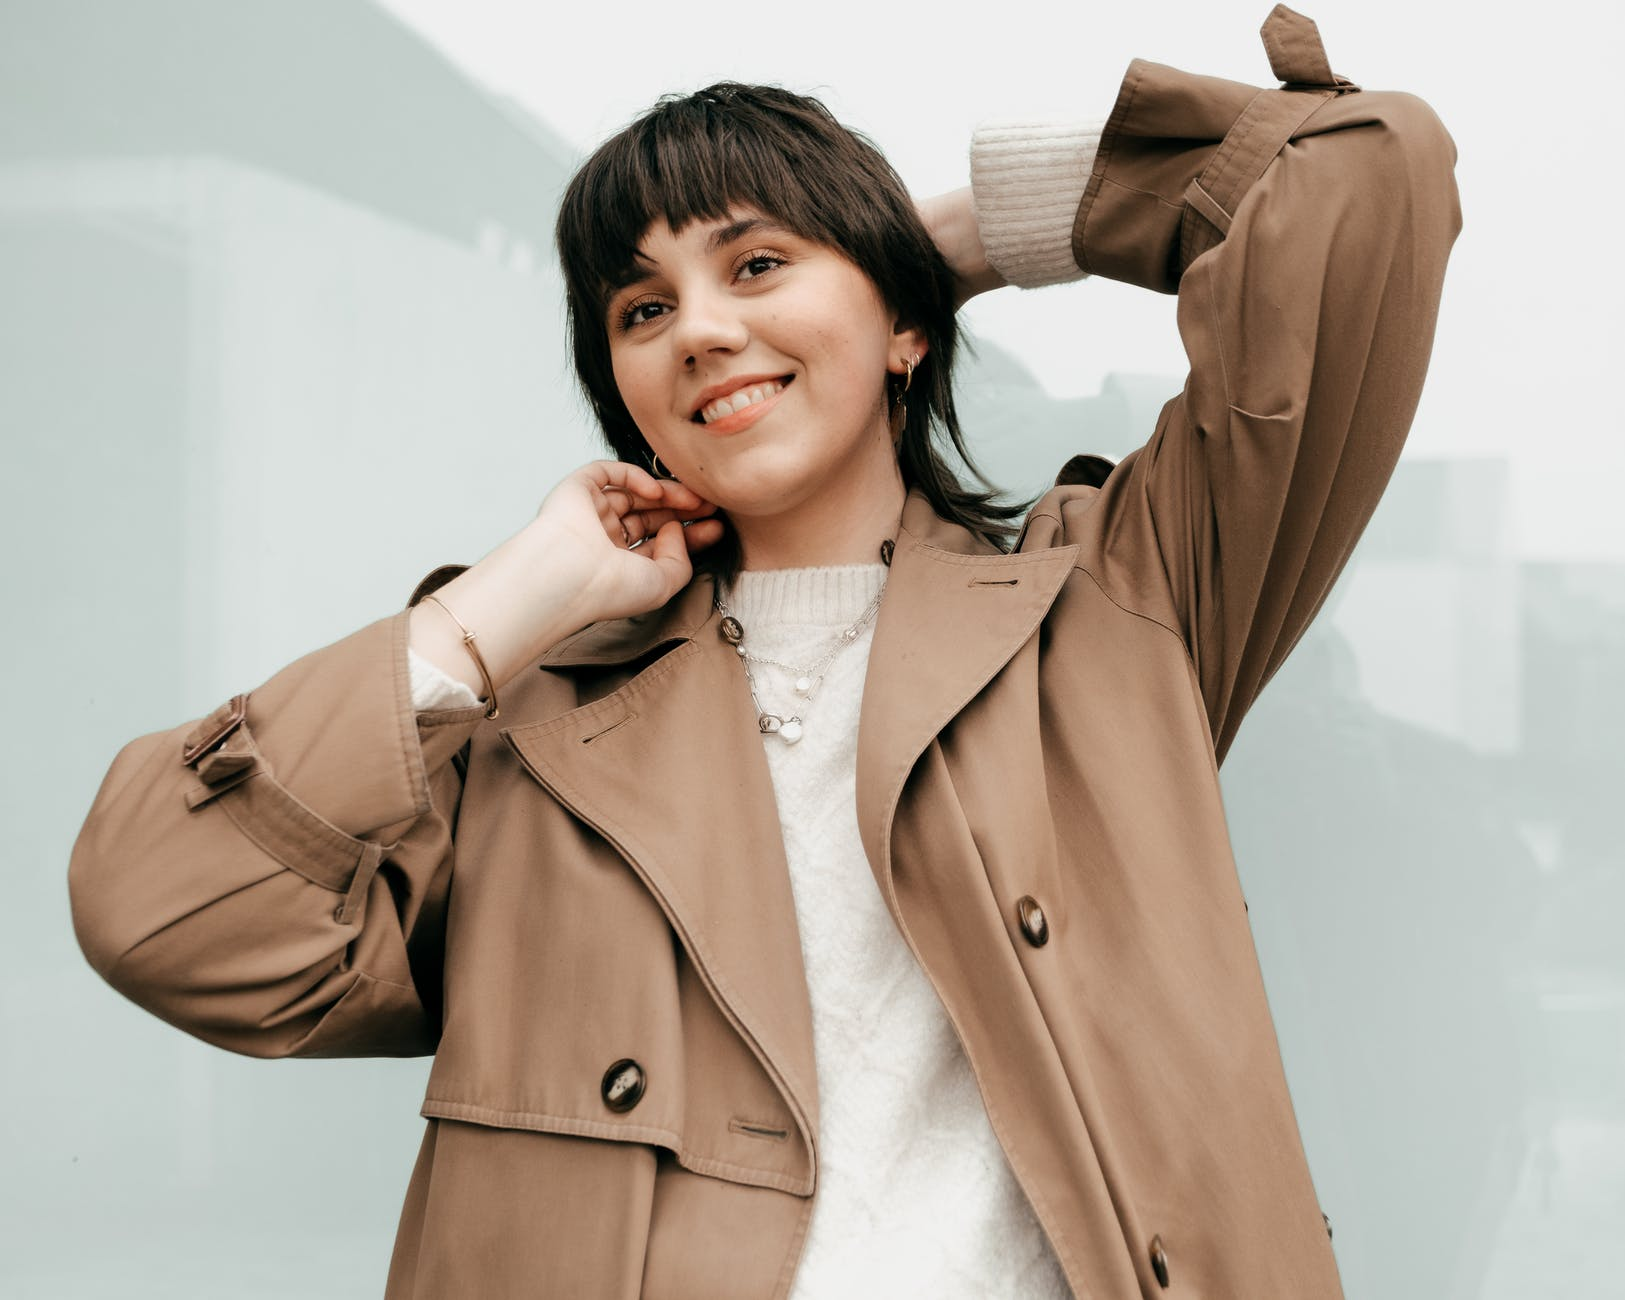 smiling female in trendy coat standing with raised hands